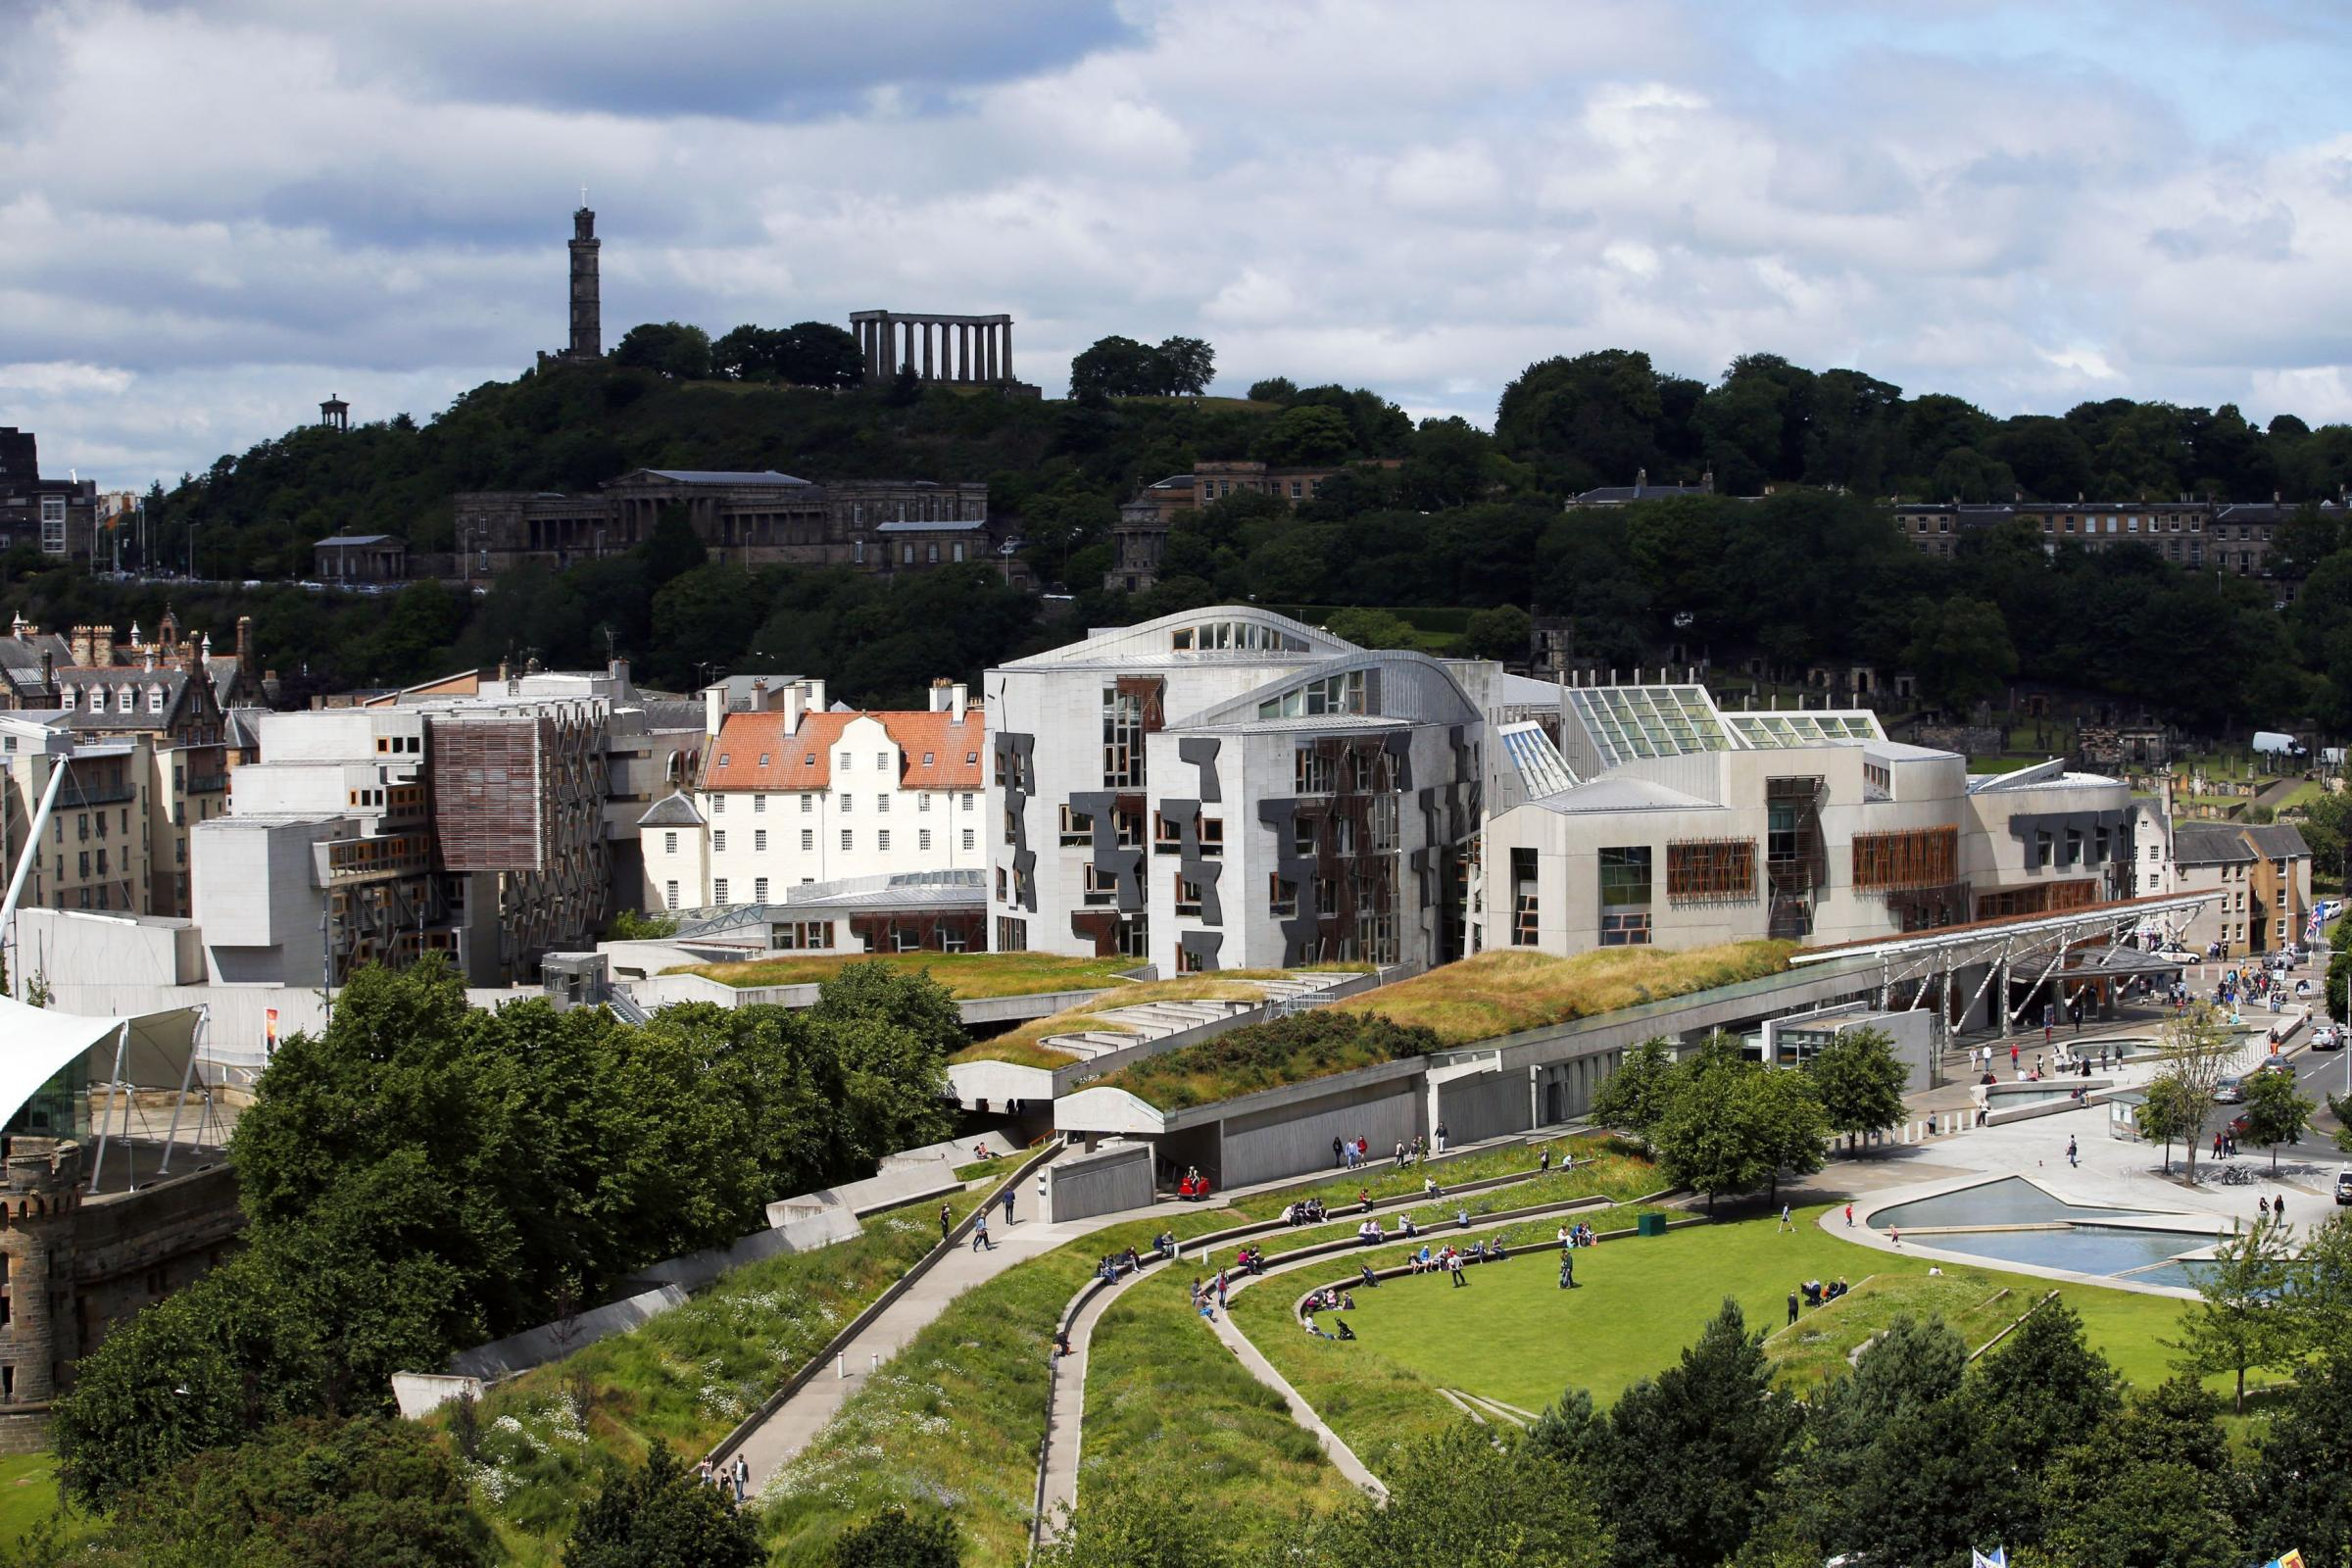 The SNP have pushed for more progressive policies on tax in the Scottish Parliament